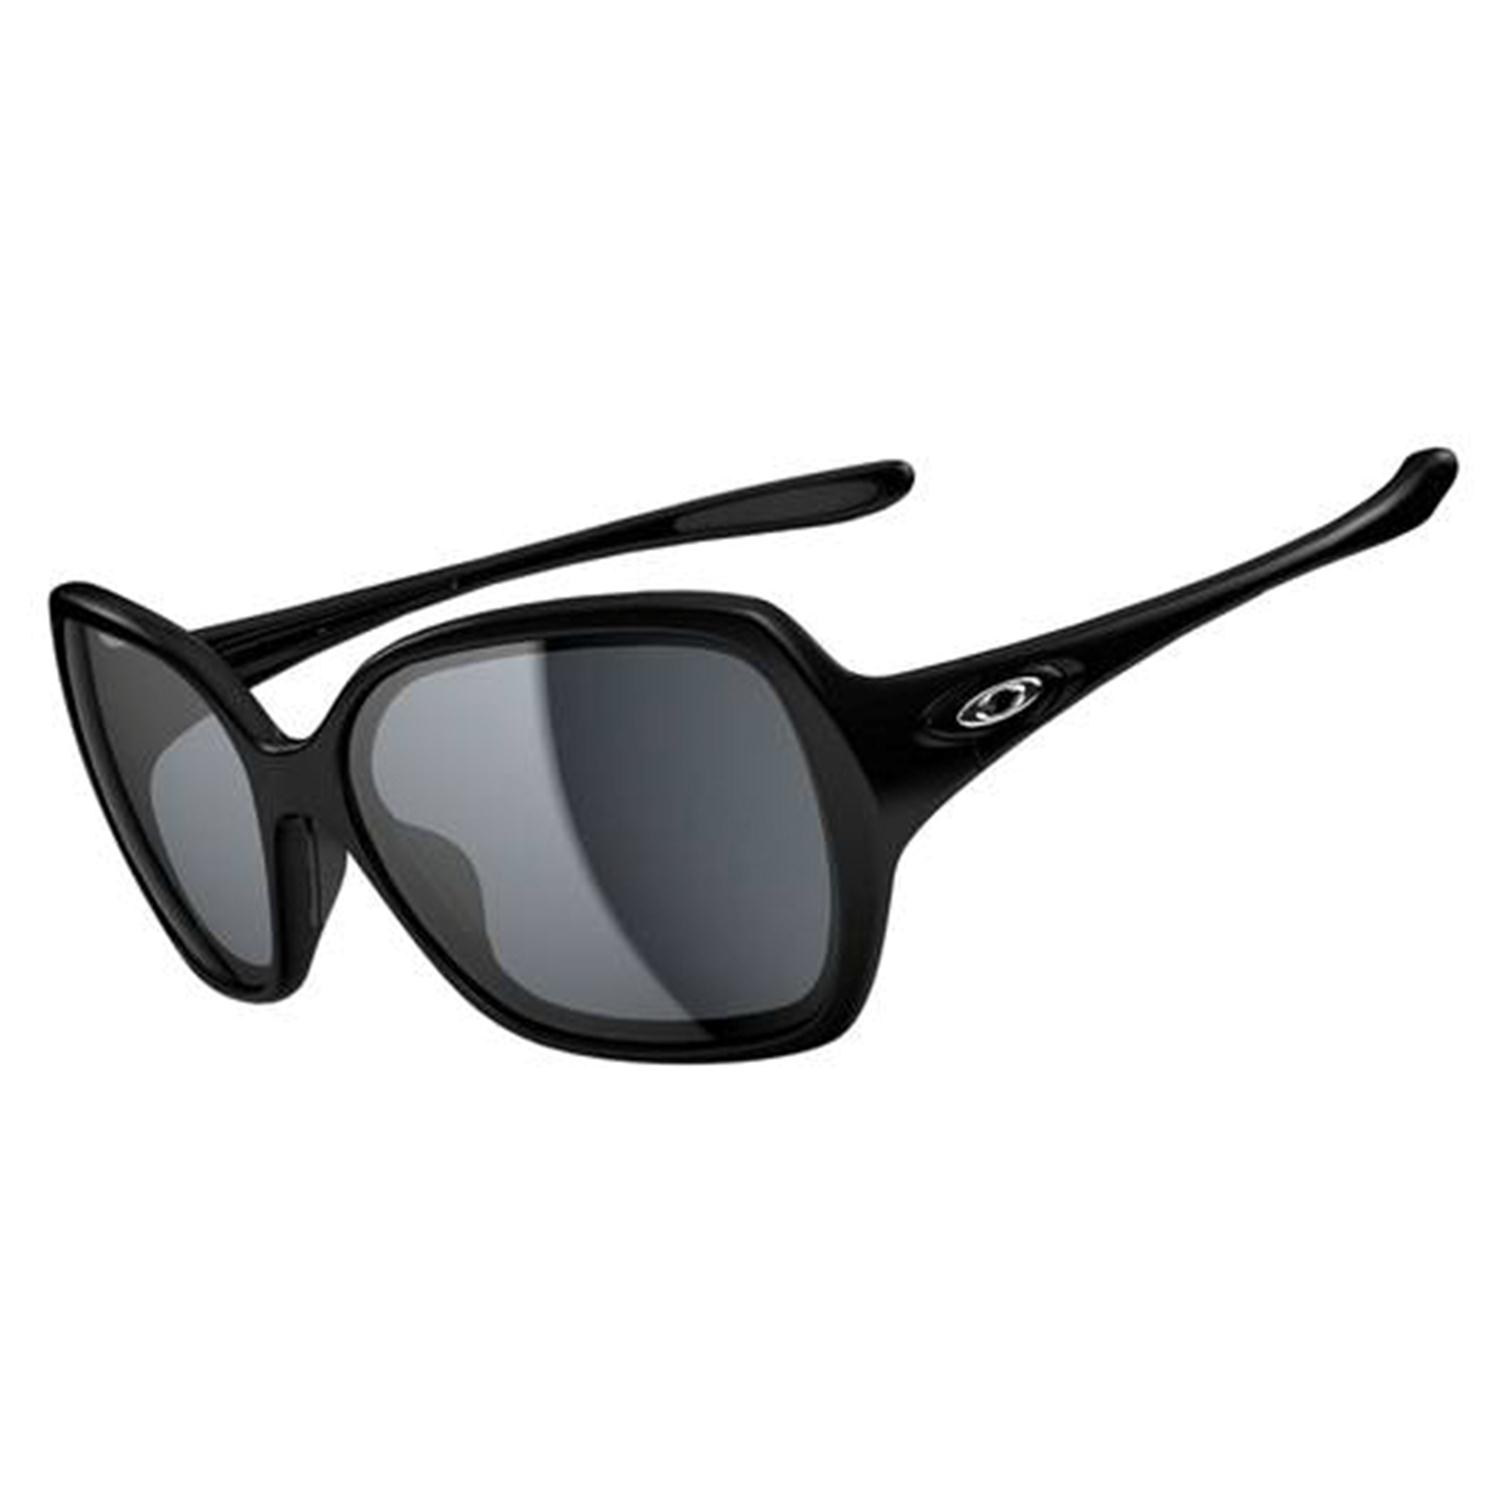 4vcgwq2va86pqcr Oakley Women Sunglasses